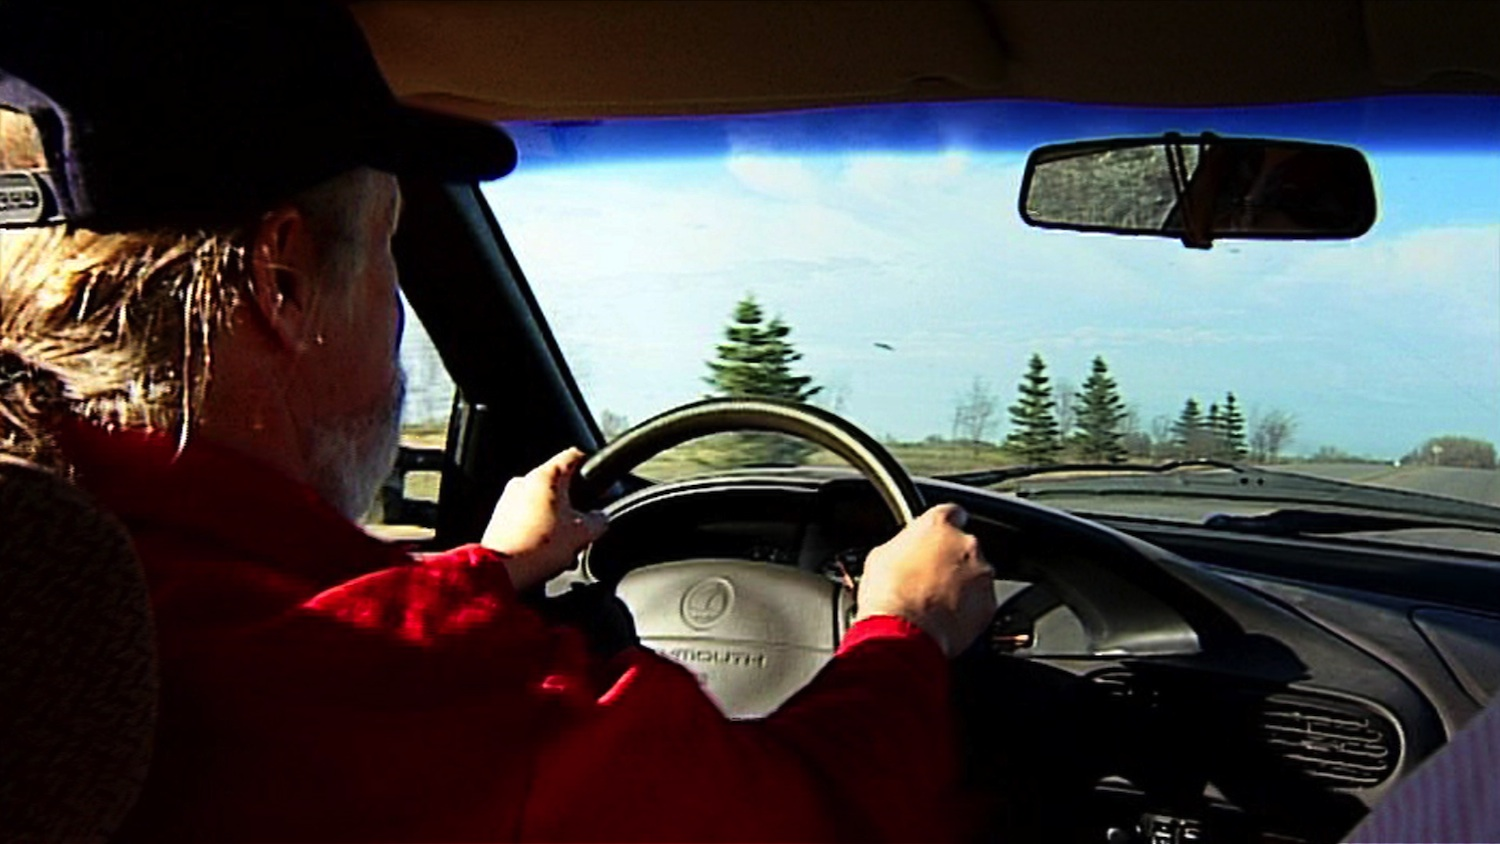 HDWN_01_GAME_HD_EXT_Iowa Max Driving 01.jpg